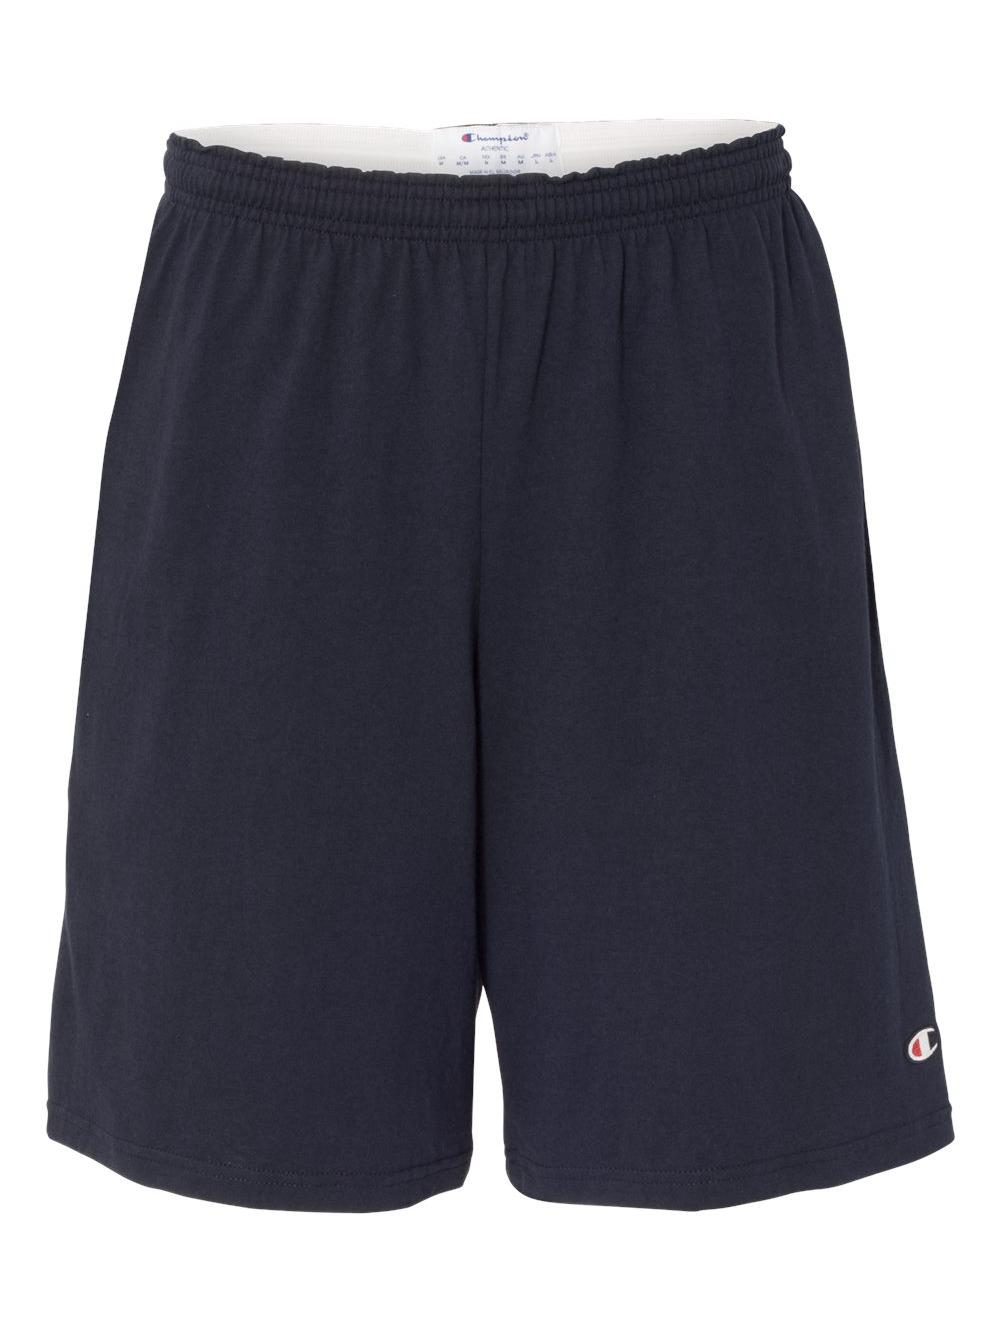 "Champion Athletics 9"" Inseam Cotton Jersey Shorts with Pockets"